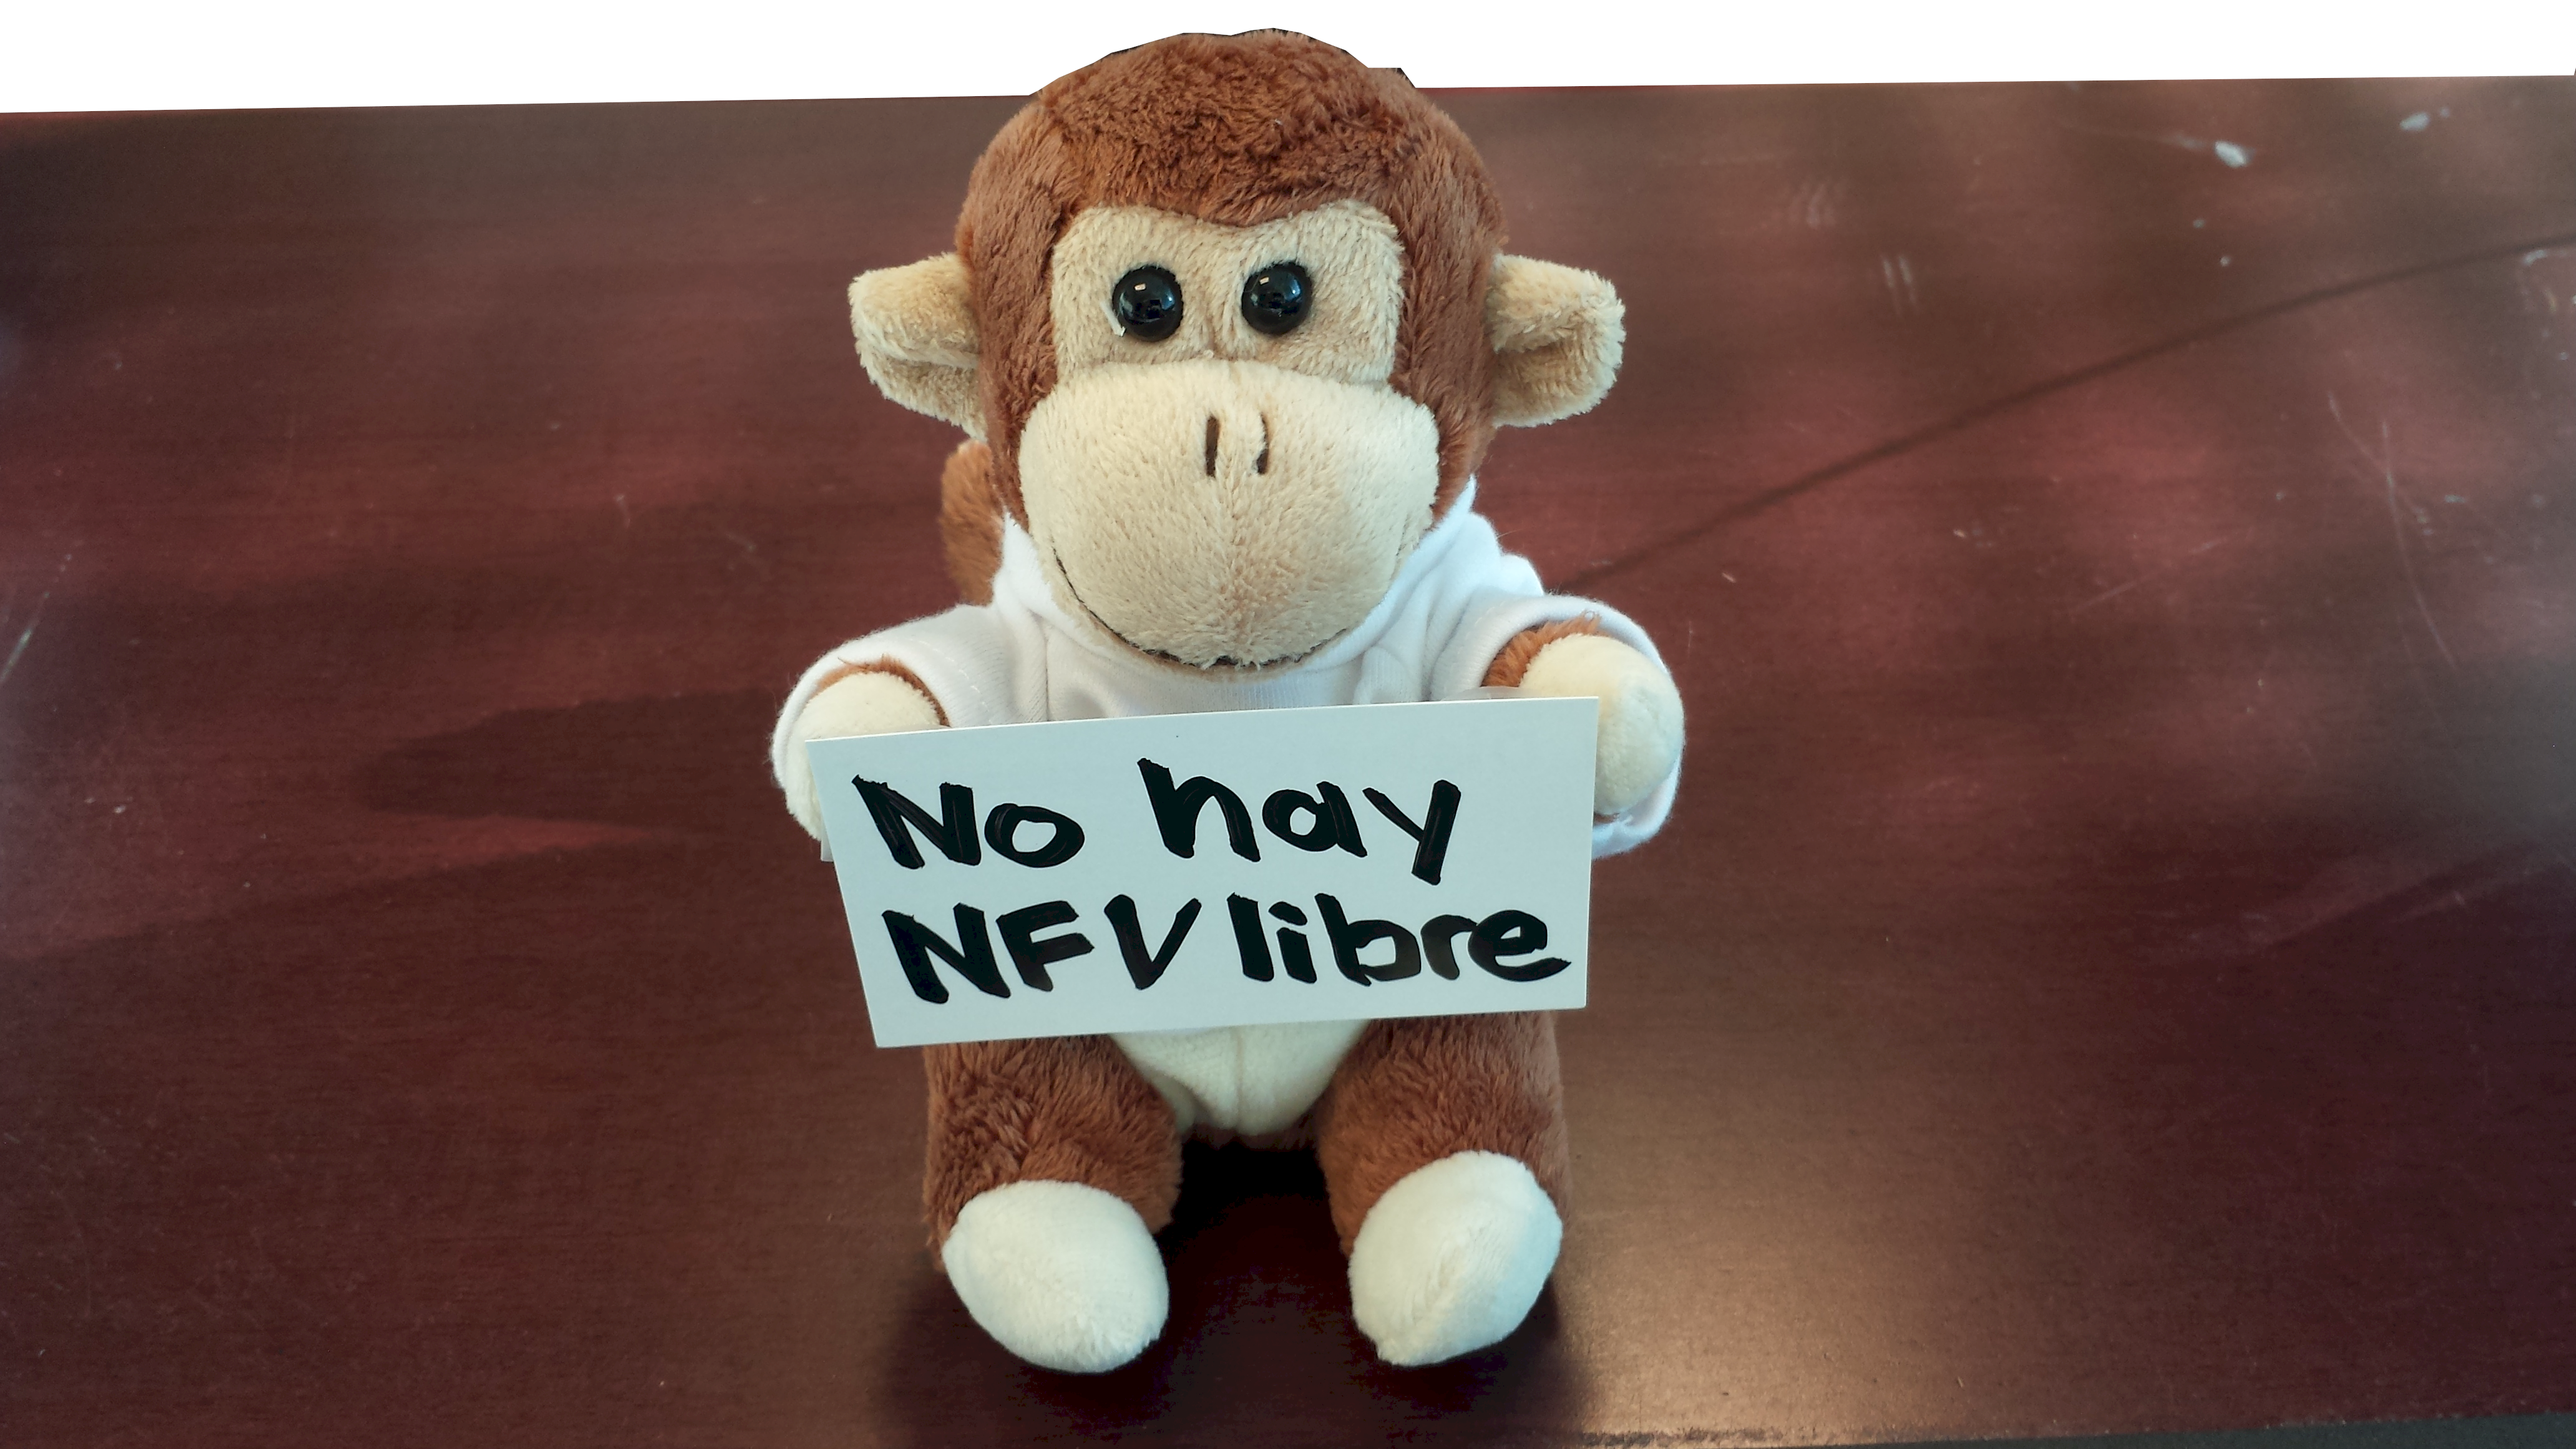 When It Comes to NFV Interoperability, There is No Such Thing as a Free Monkey